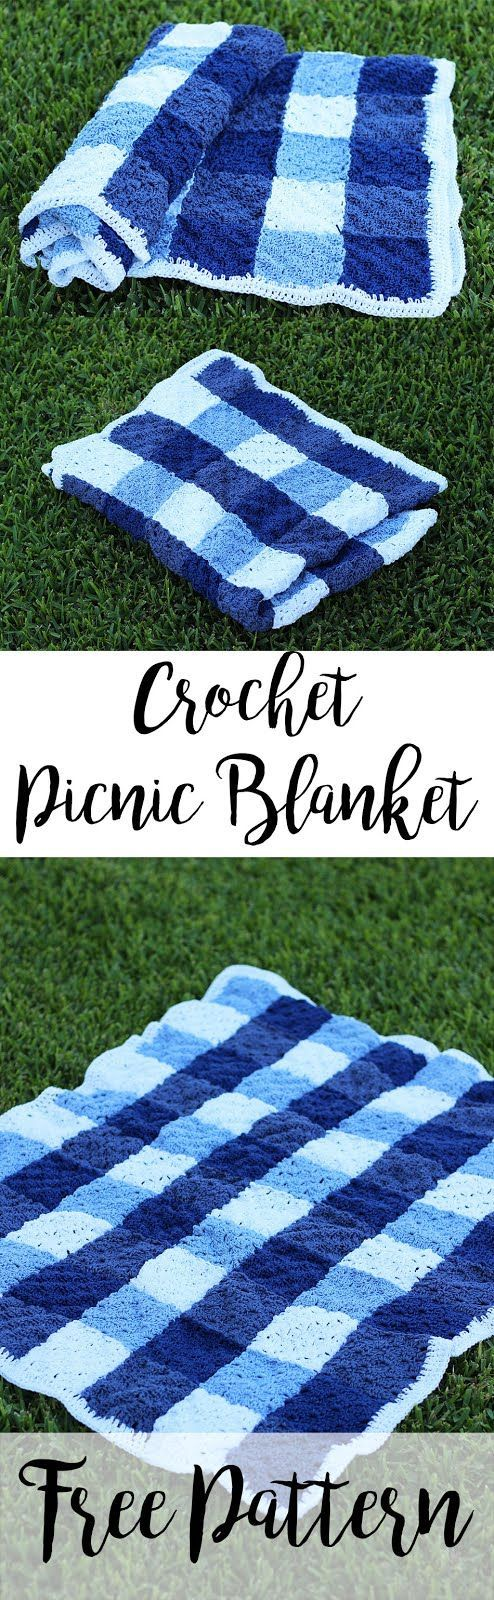 Crochet Gingham Picnic Blanket | Made of durable cotton! | Free Pattern